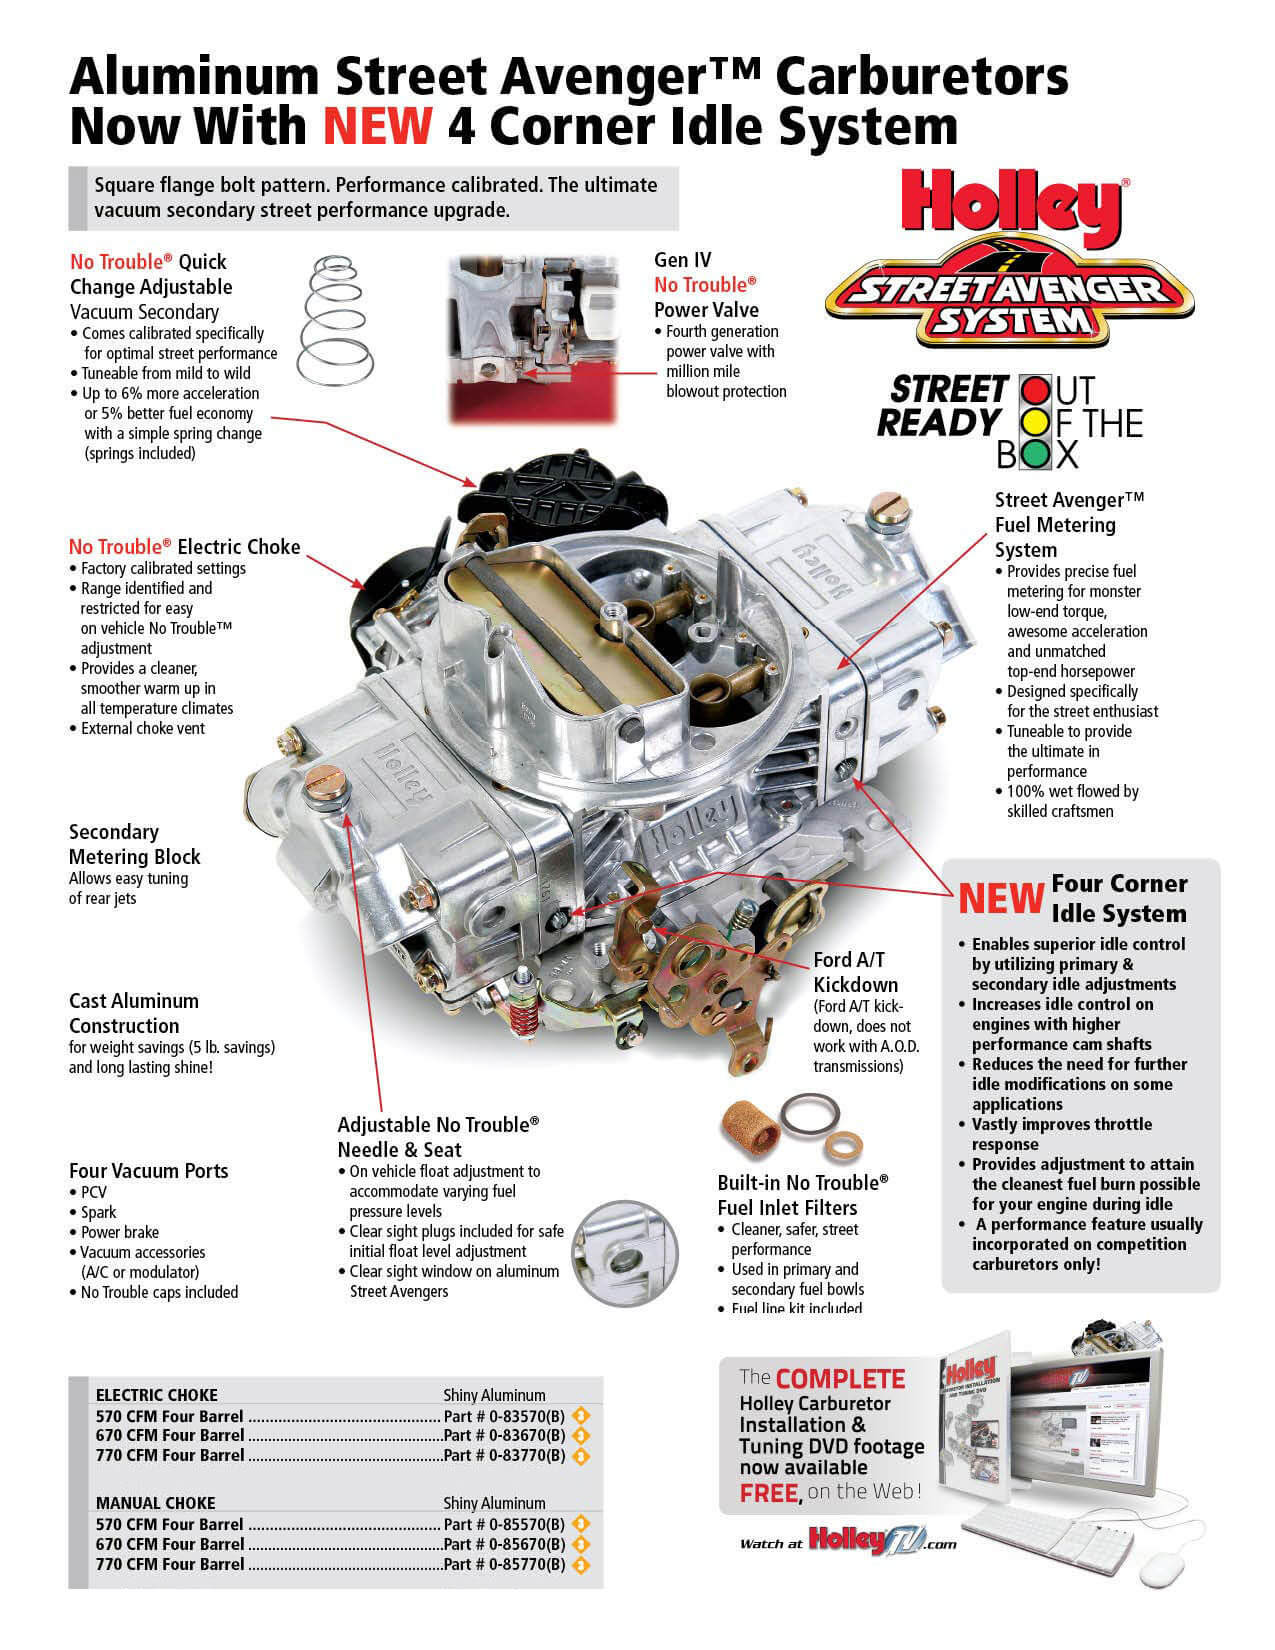 1967-1991 AMC V8 Holley 770 CFM Street Avenger Aluminum Carburetor